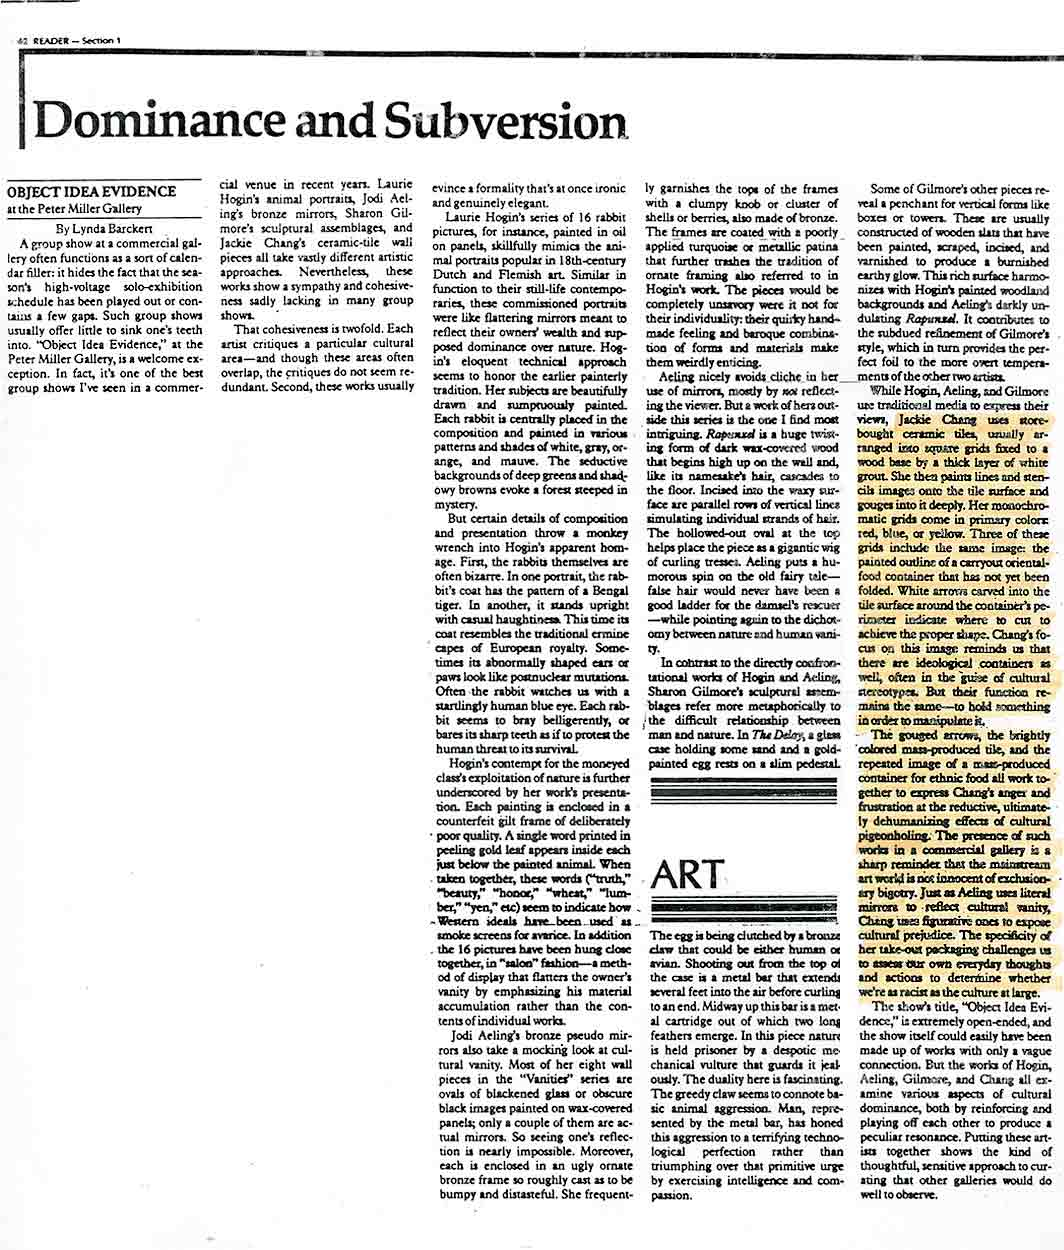 Dominance and Subversion